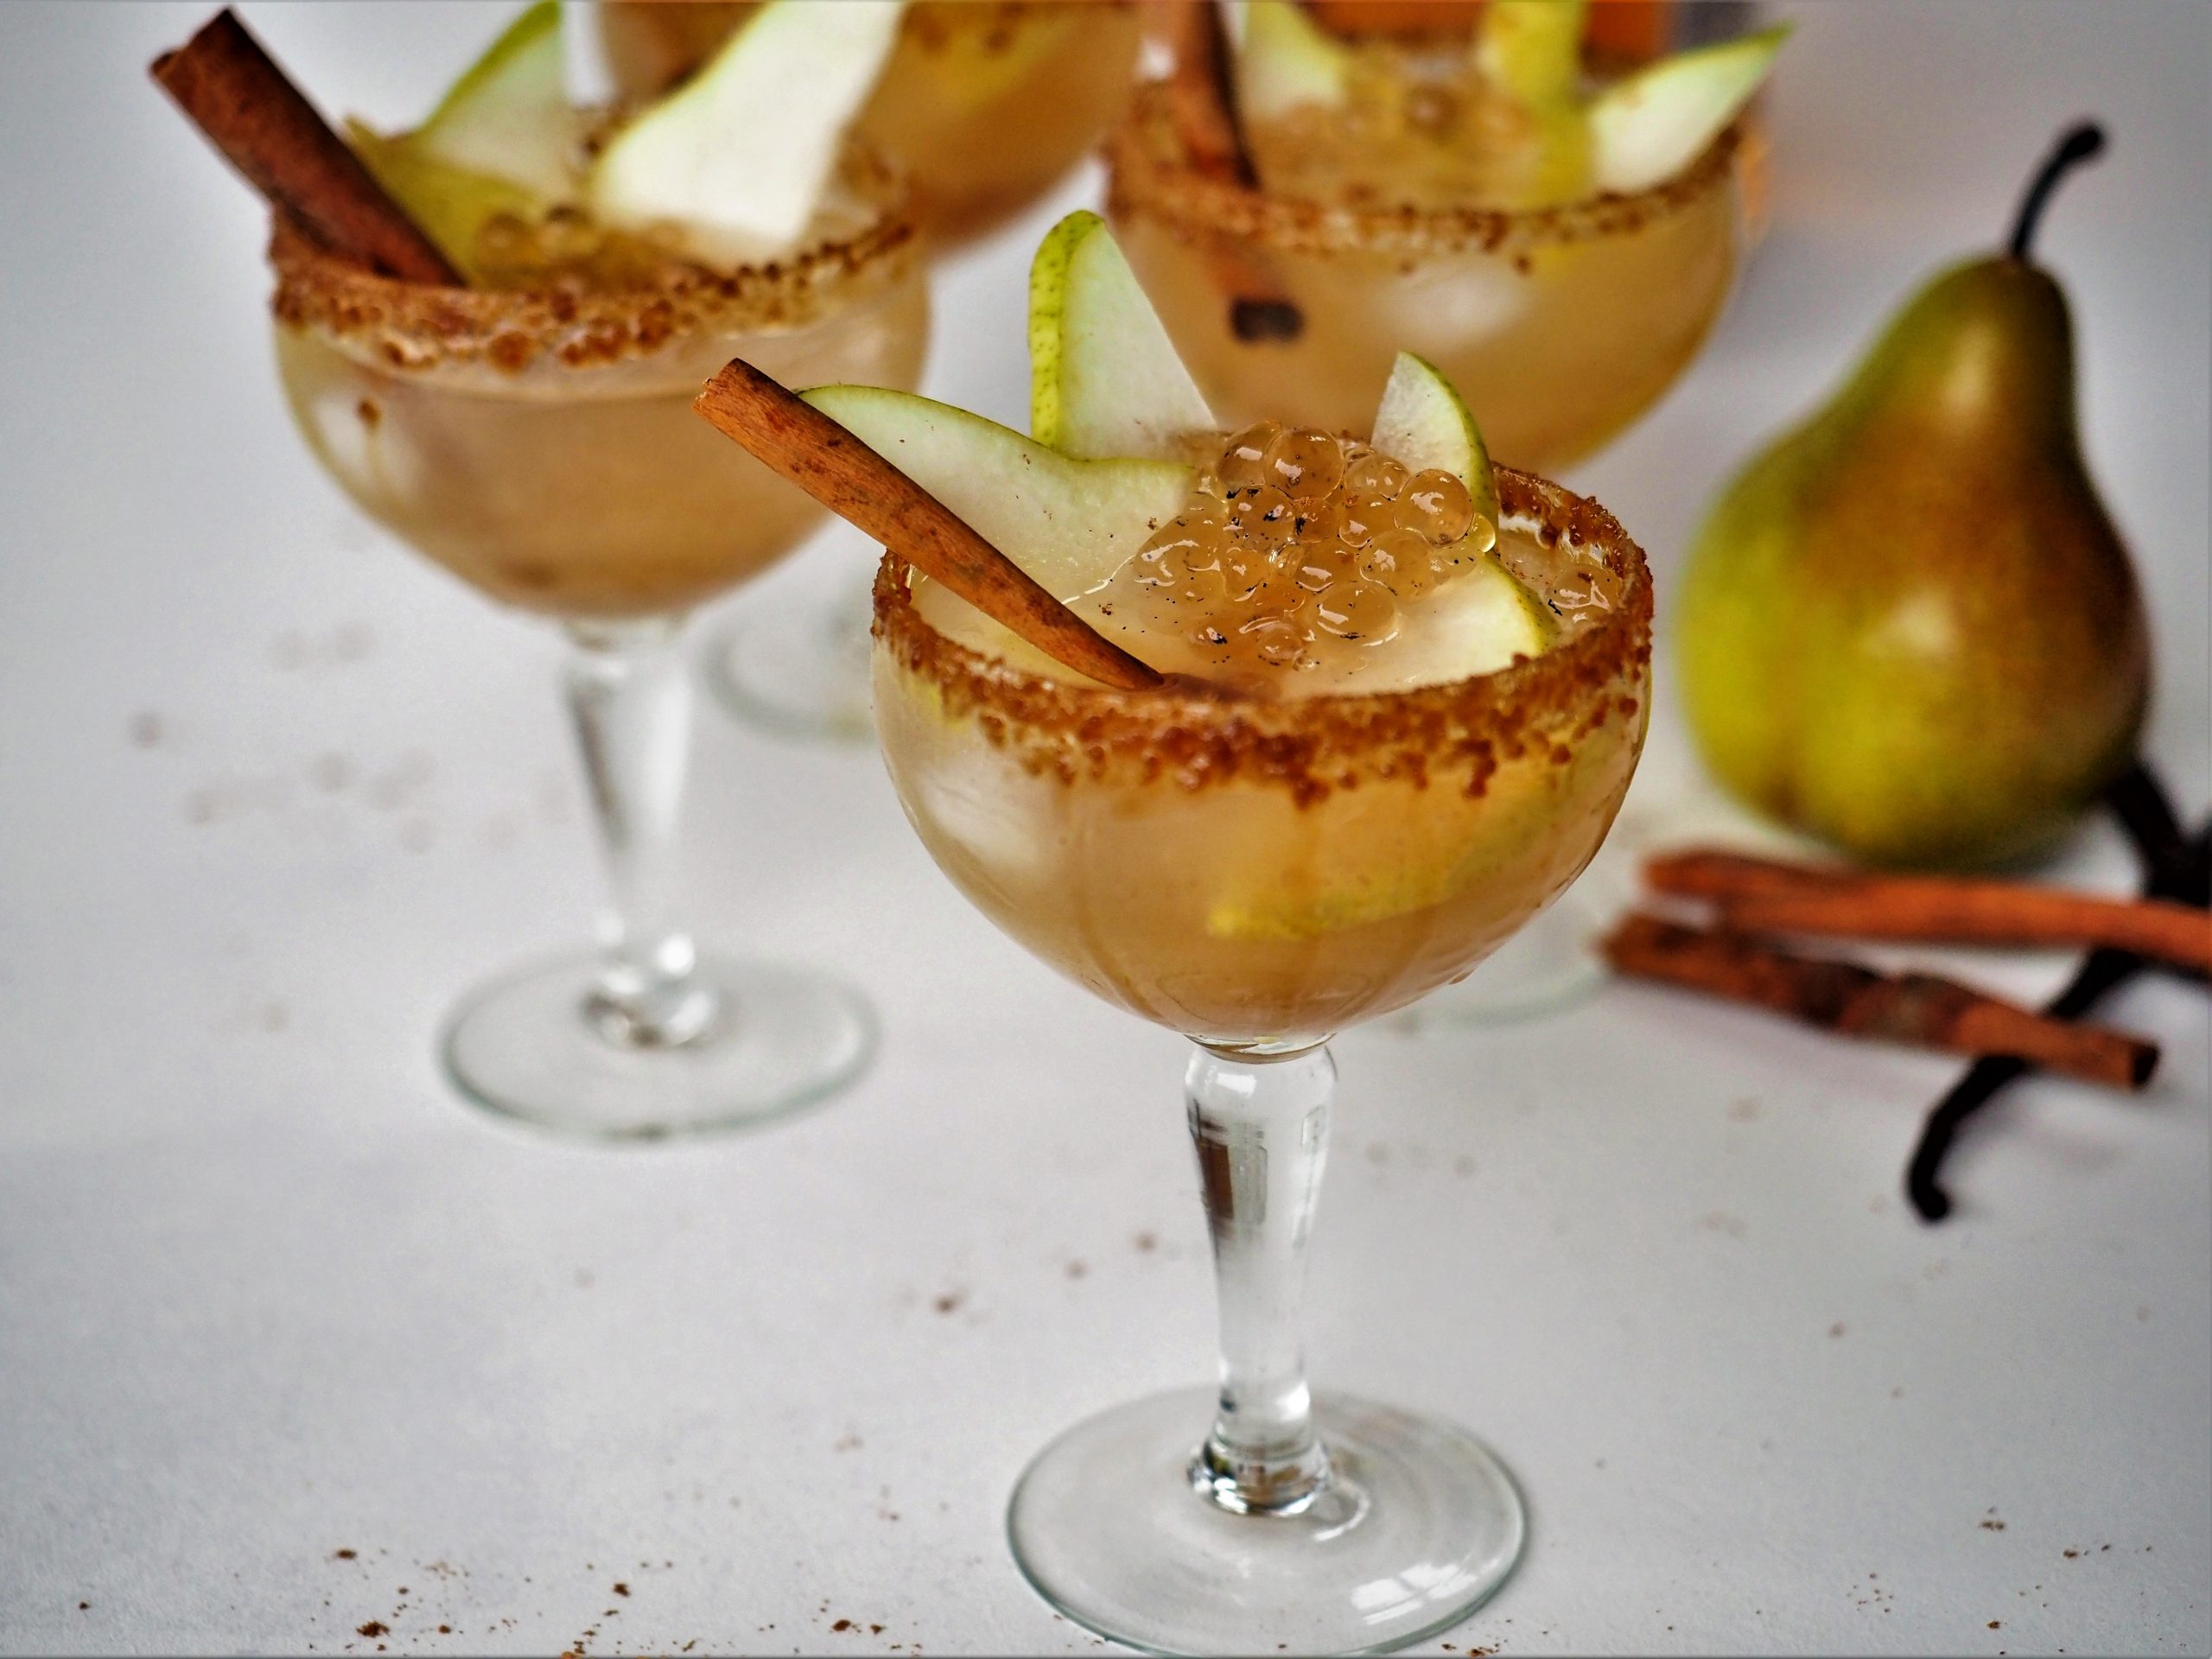 Sparkling Spiced Pear Cocktails with Vanilla Bean Flavour Pearls